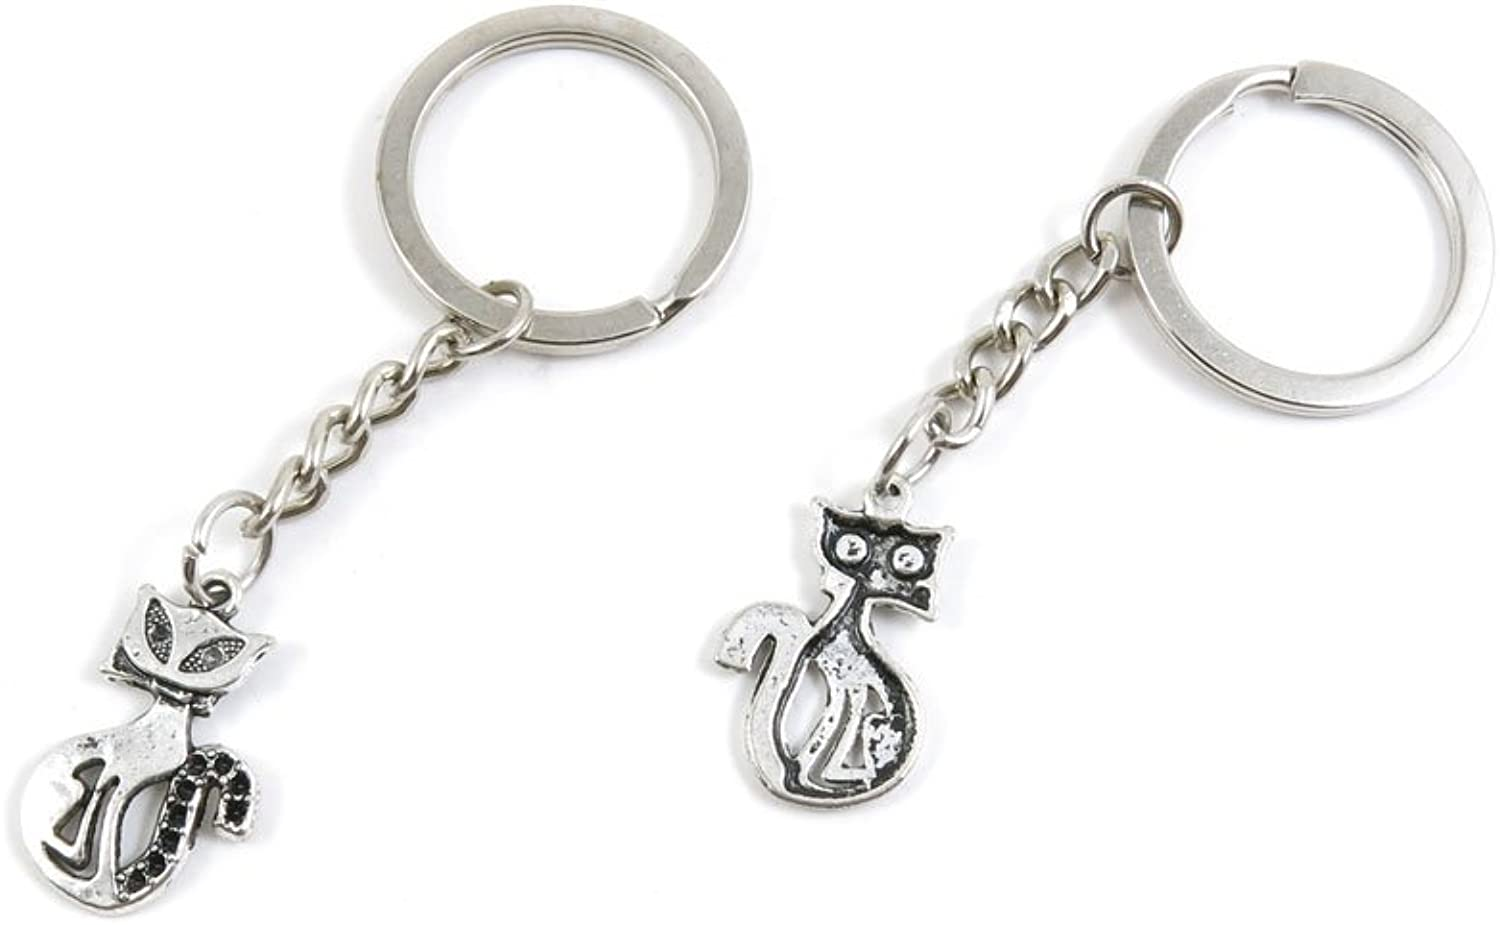 220 Pieces Fashion Jewelry Keyring Keychain Door Car Key Tag Ring Chain Supplier Supply Wholesale Bulk Lots I1VL1 Kitten Cat